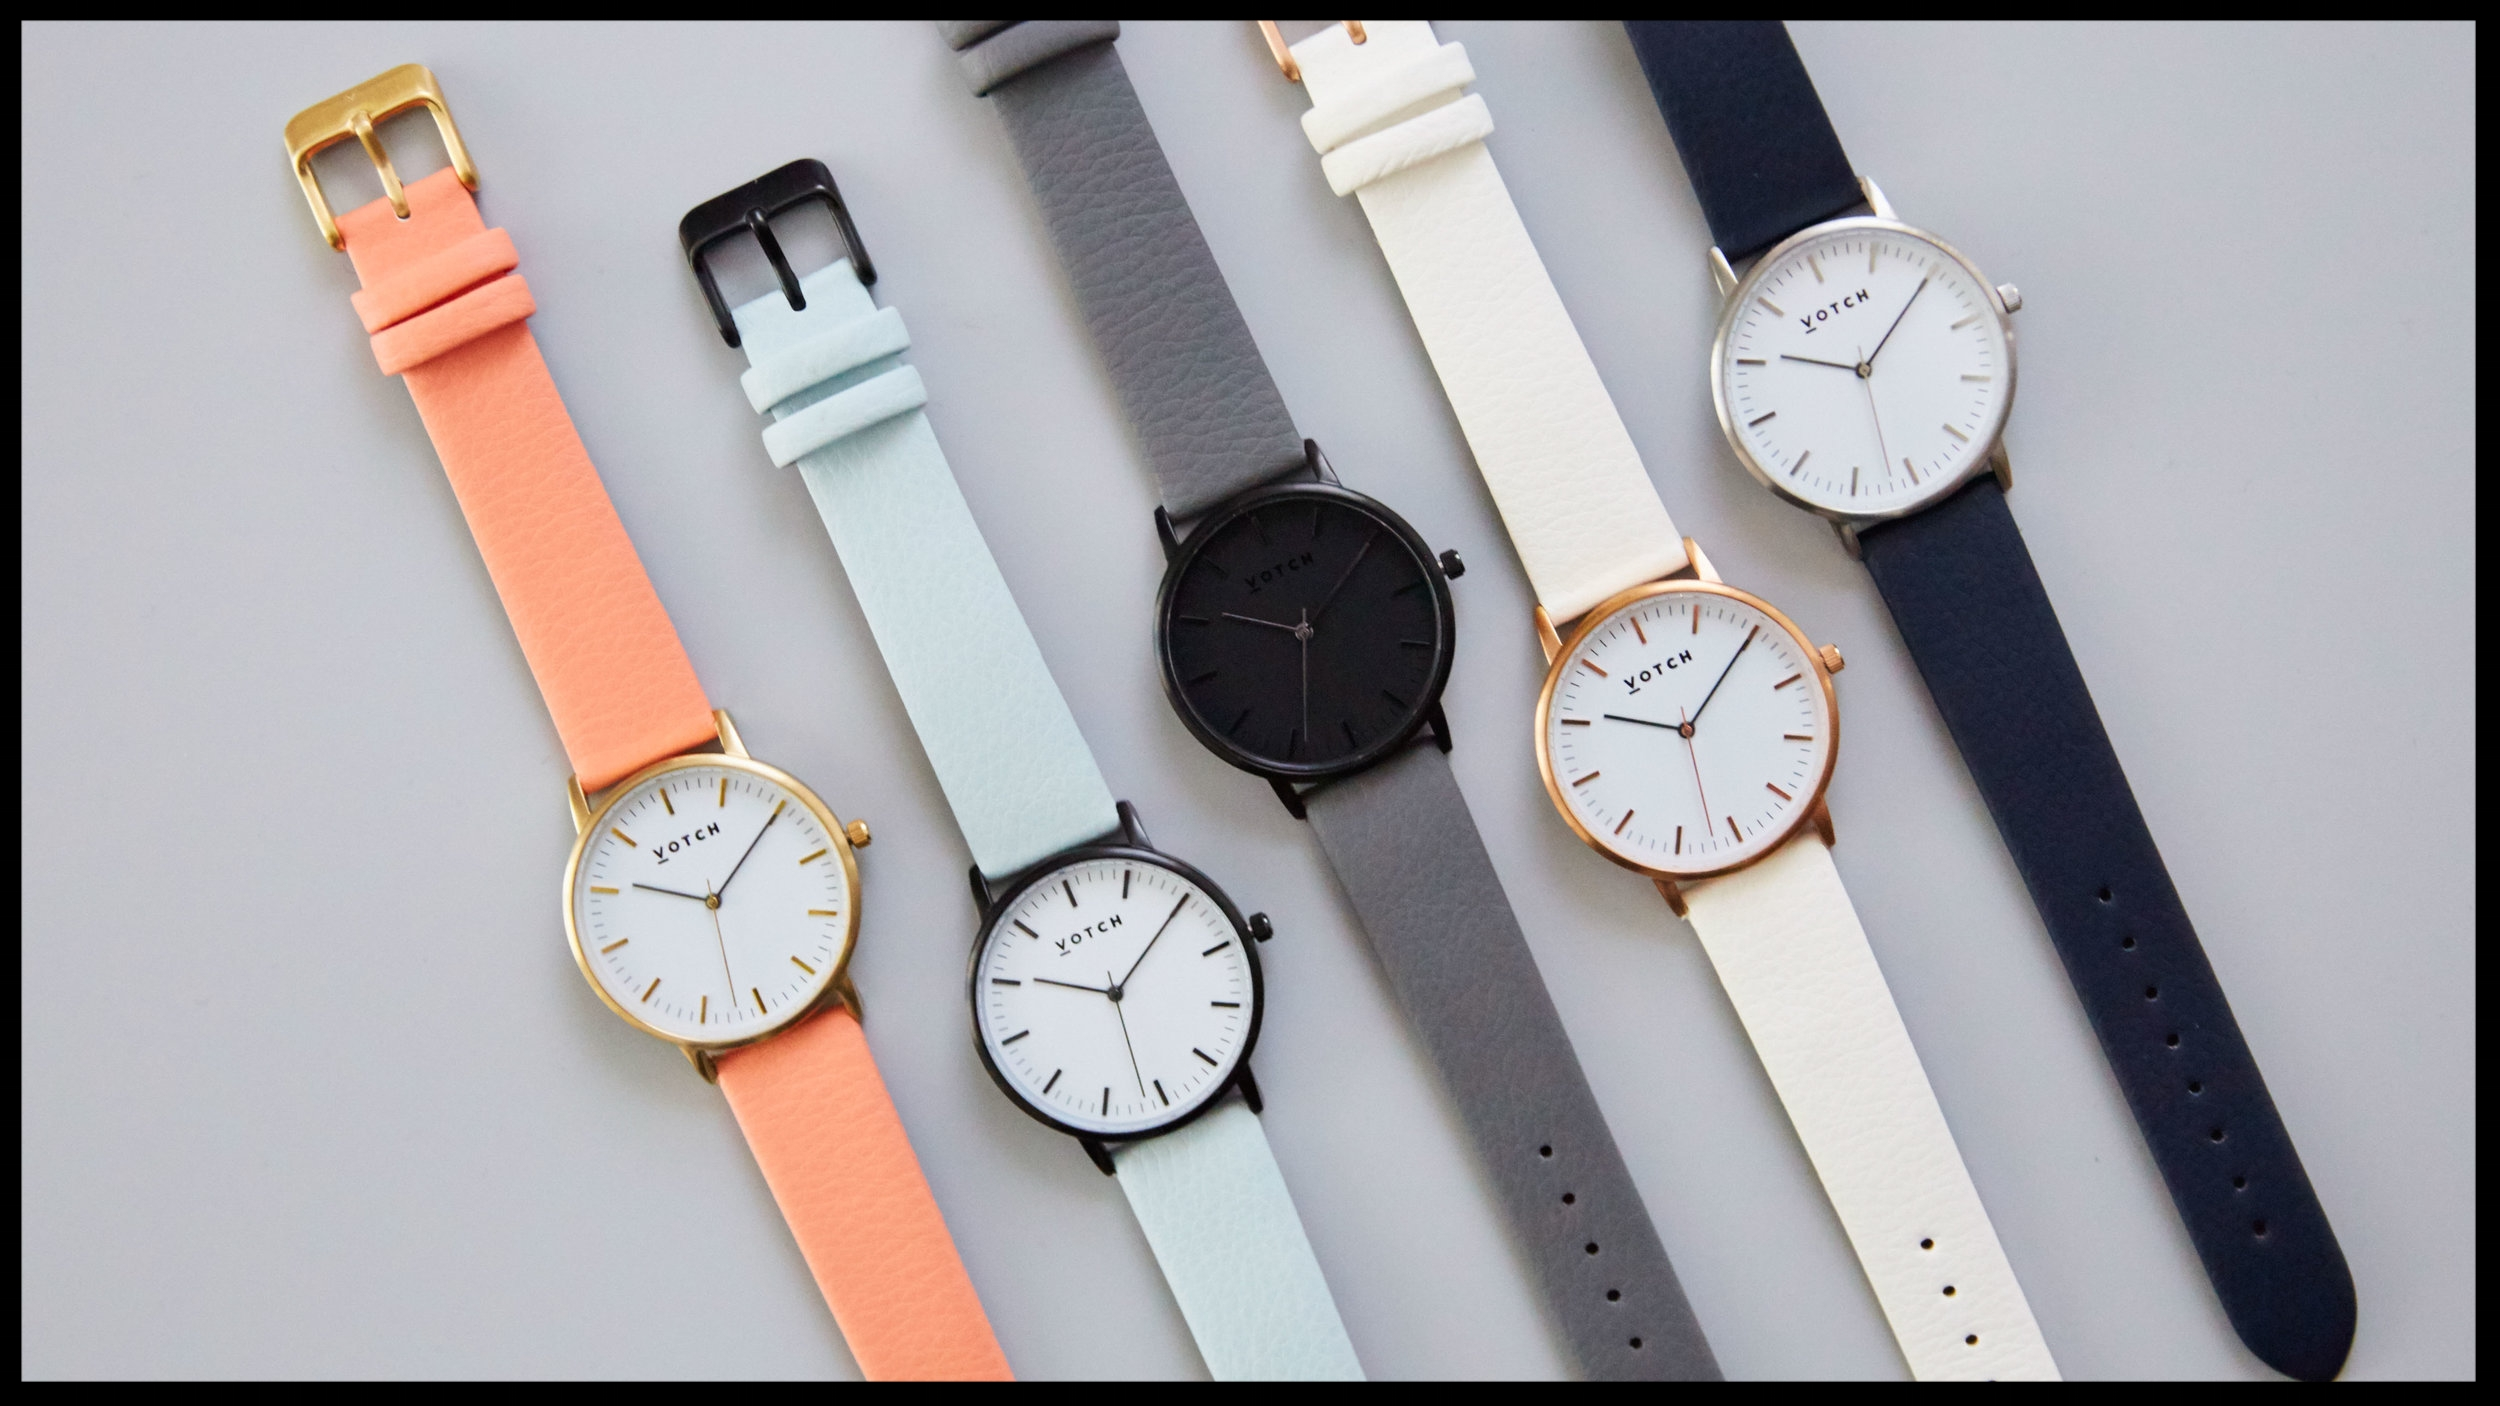 Votch Watch - These gorgeous watches are going to be on many vegans' Christmas wishlist. They are beautifully made, come in many styles and of course the strap is faux leather. From £120. Buy now.